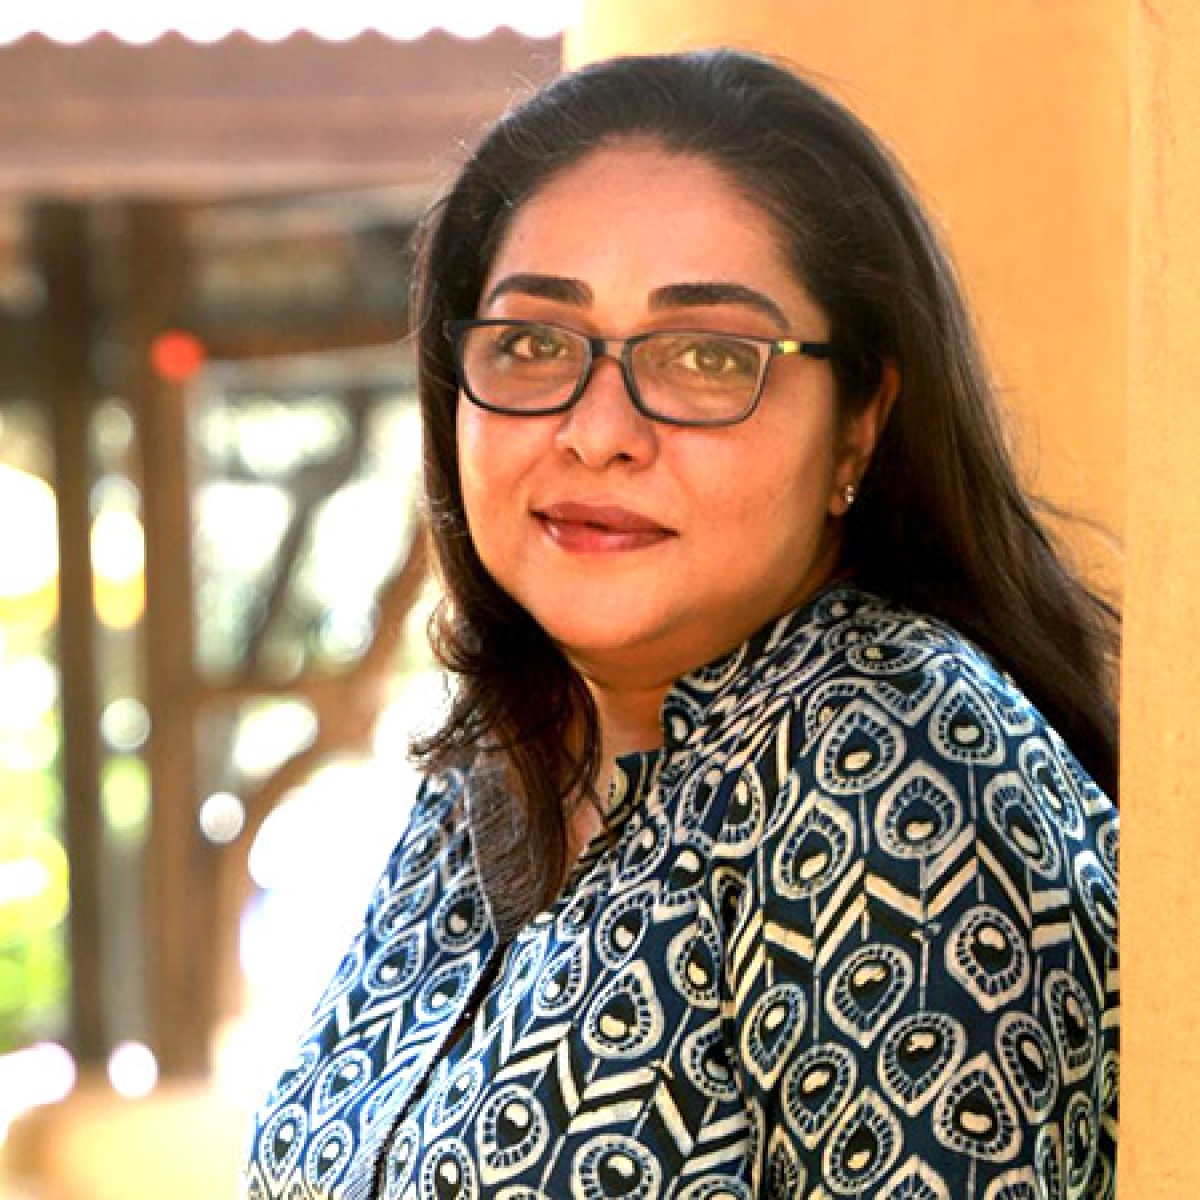 Meghna Gulzar Birthday Special: Not just 'Chhapaak' and 'Raazi' - here are some masterpieces by the filmmaker